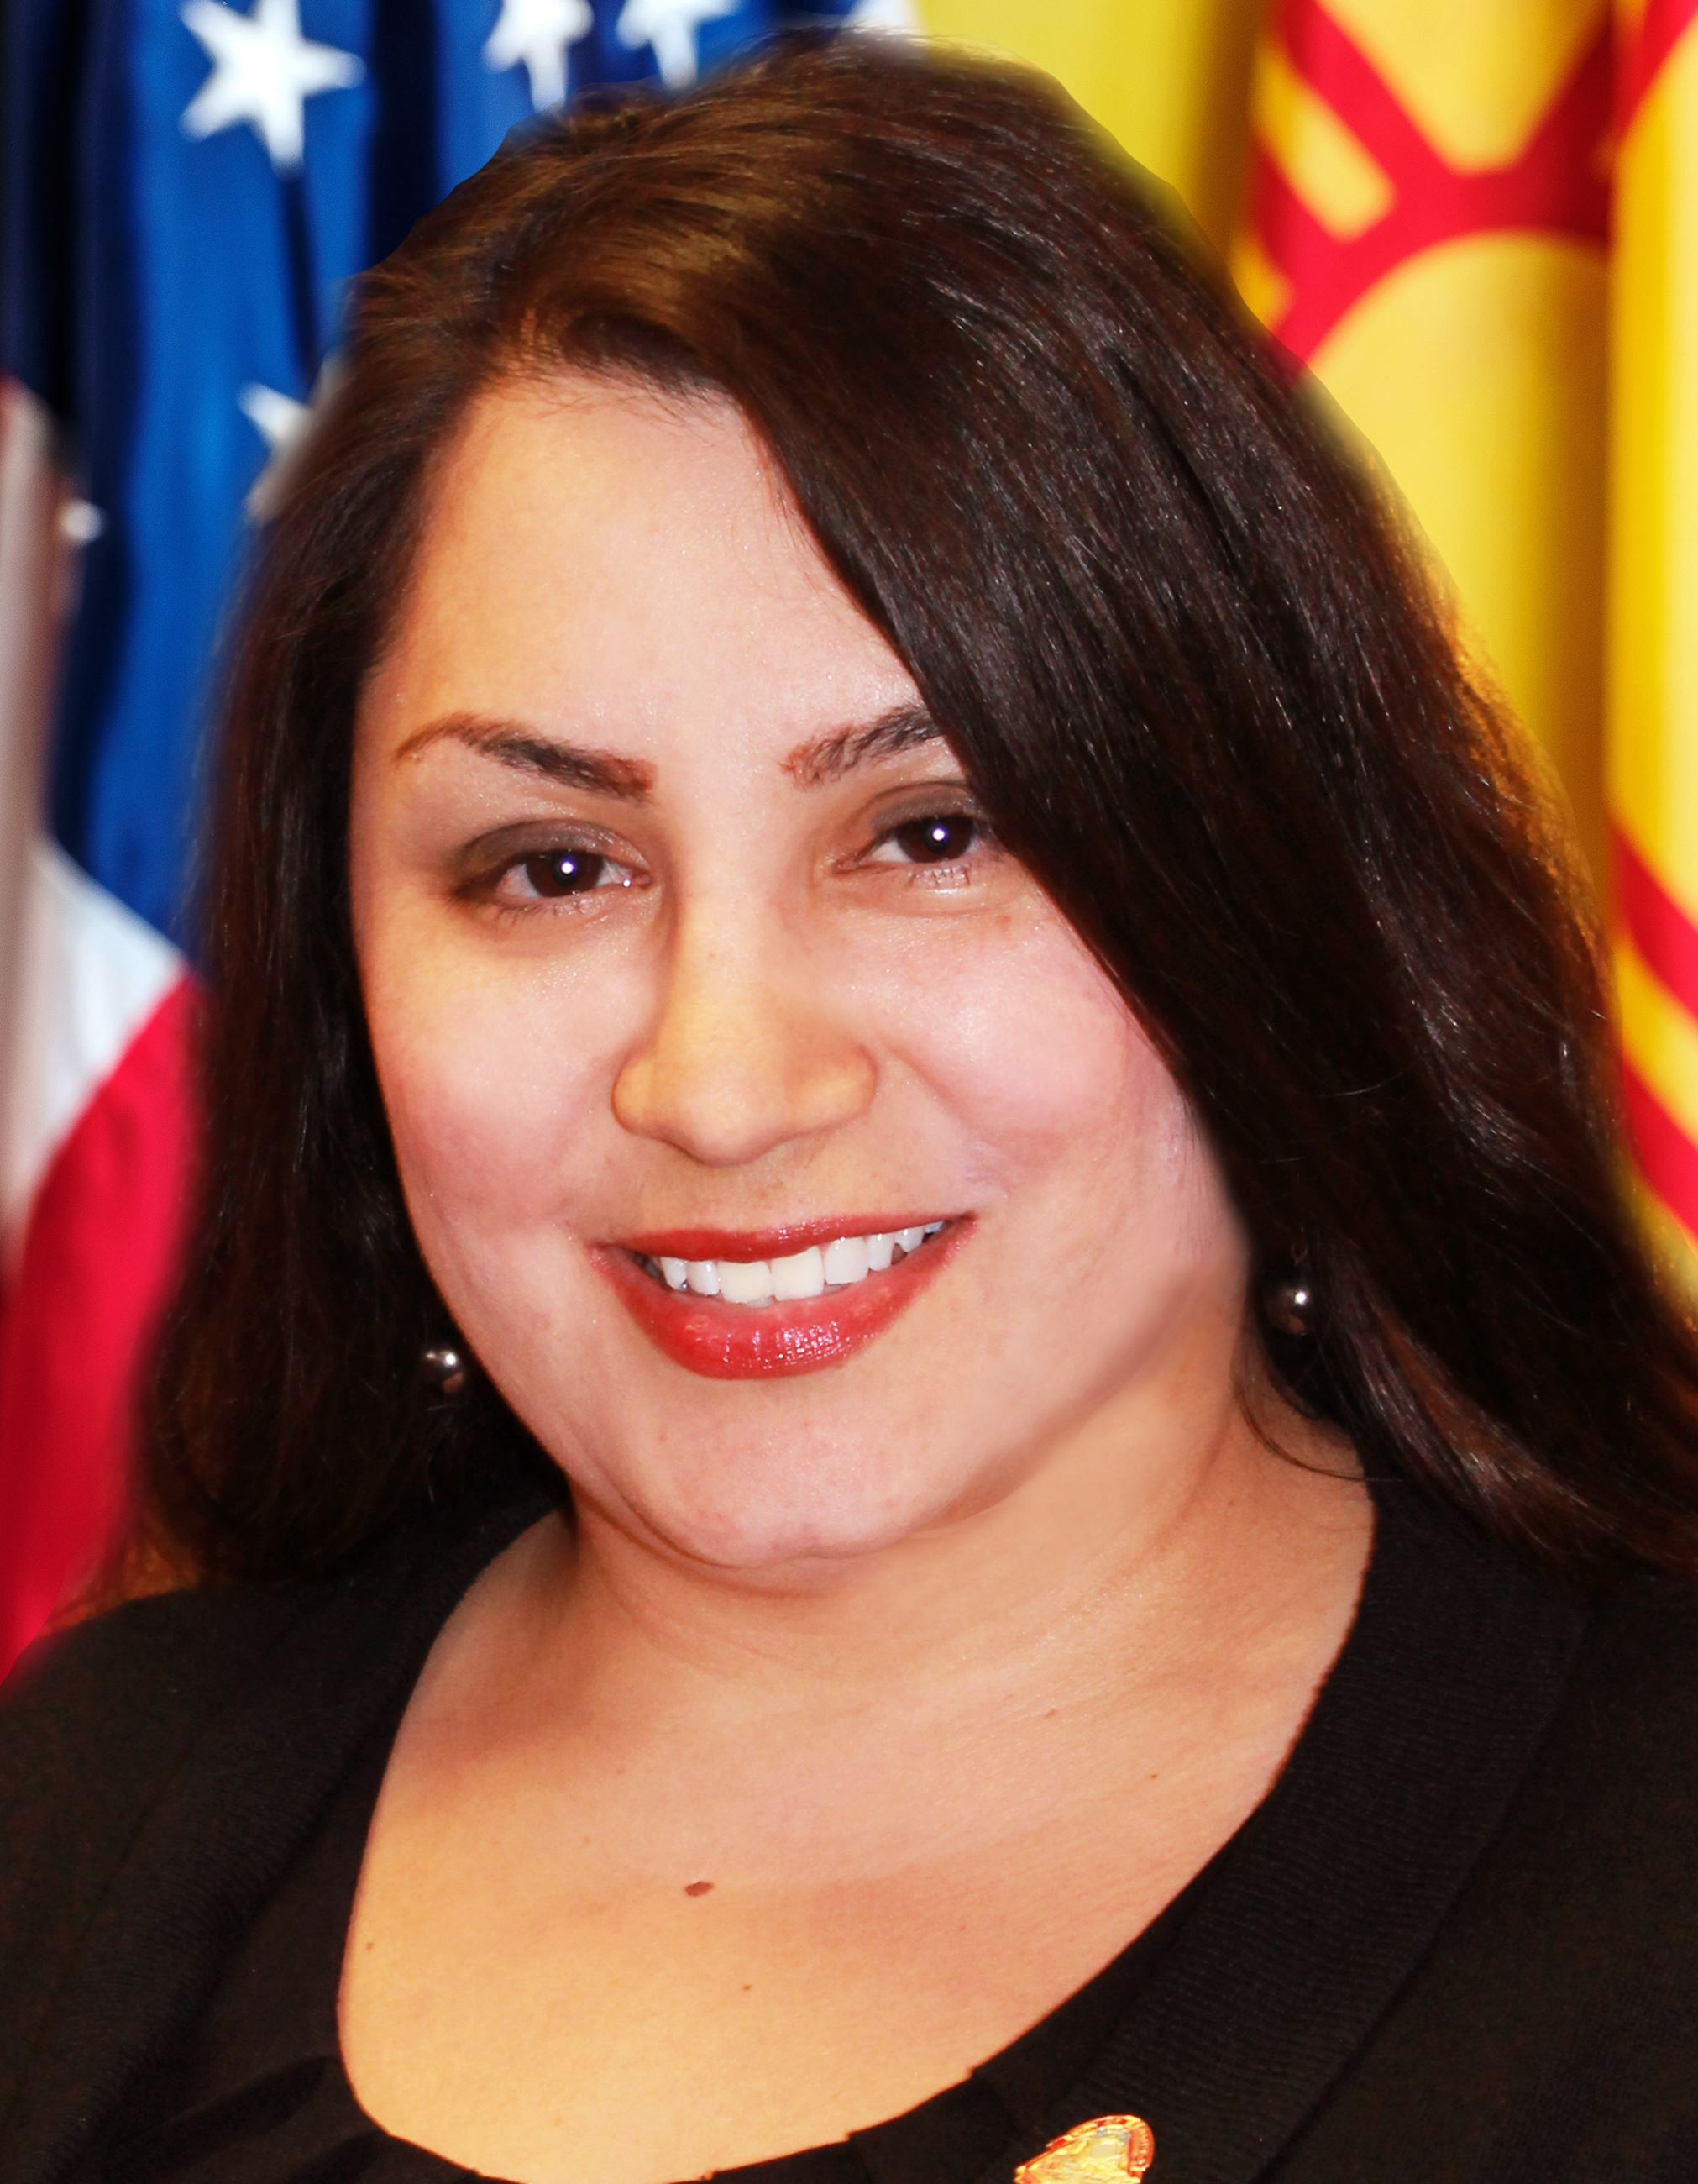 Councilor Dist 4 Mayor Pro Tem Adrianna Ortiz